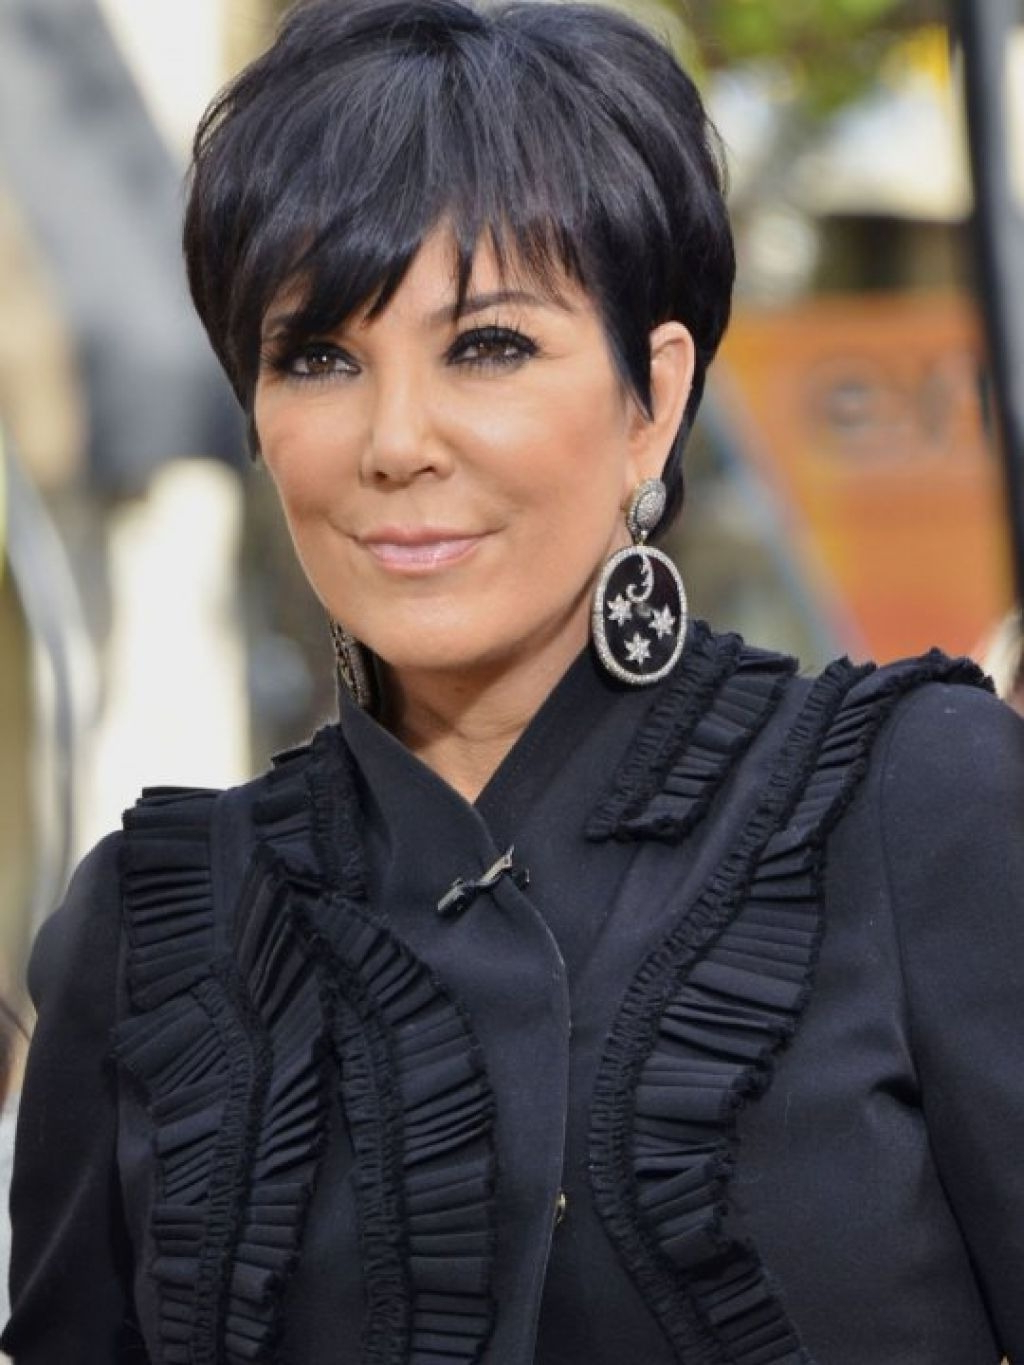 10+ Best Short Hairstyles Kris Jenner For Yearst | Hairstyles Regarding Kris Jenner Short Haircuts (View 13 of 25)